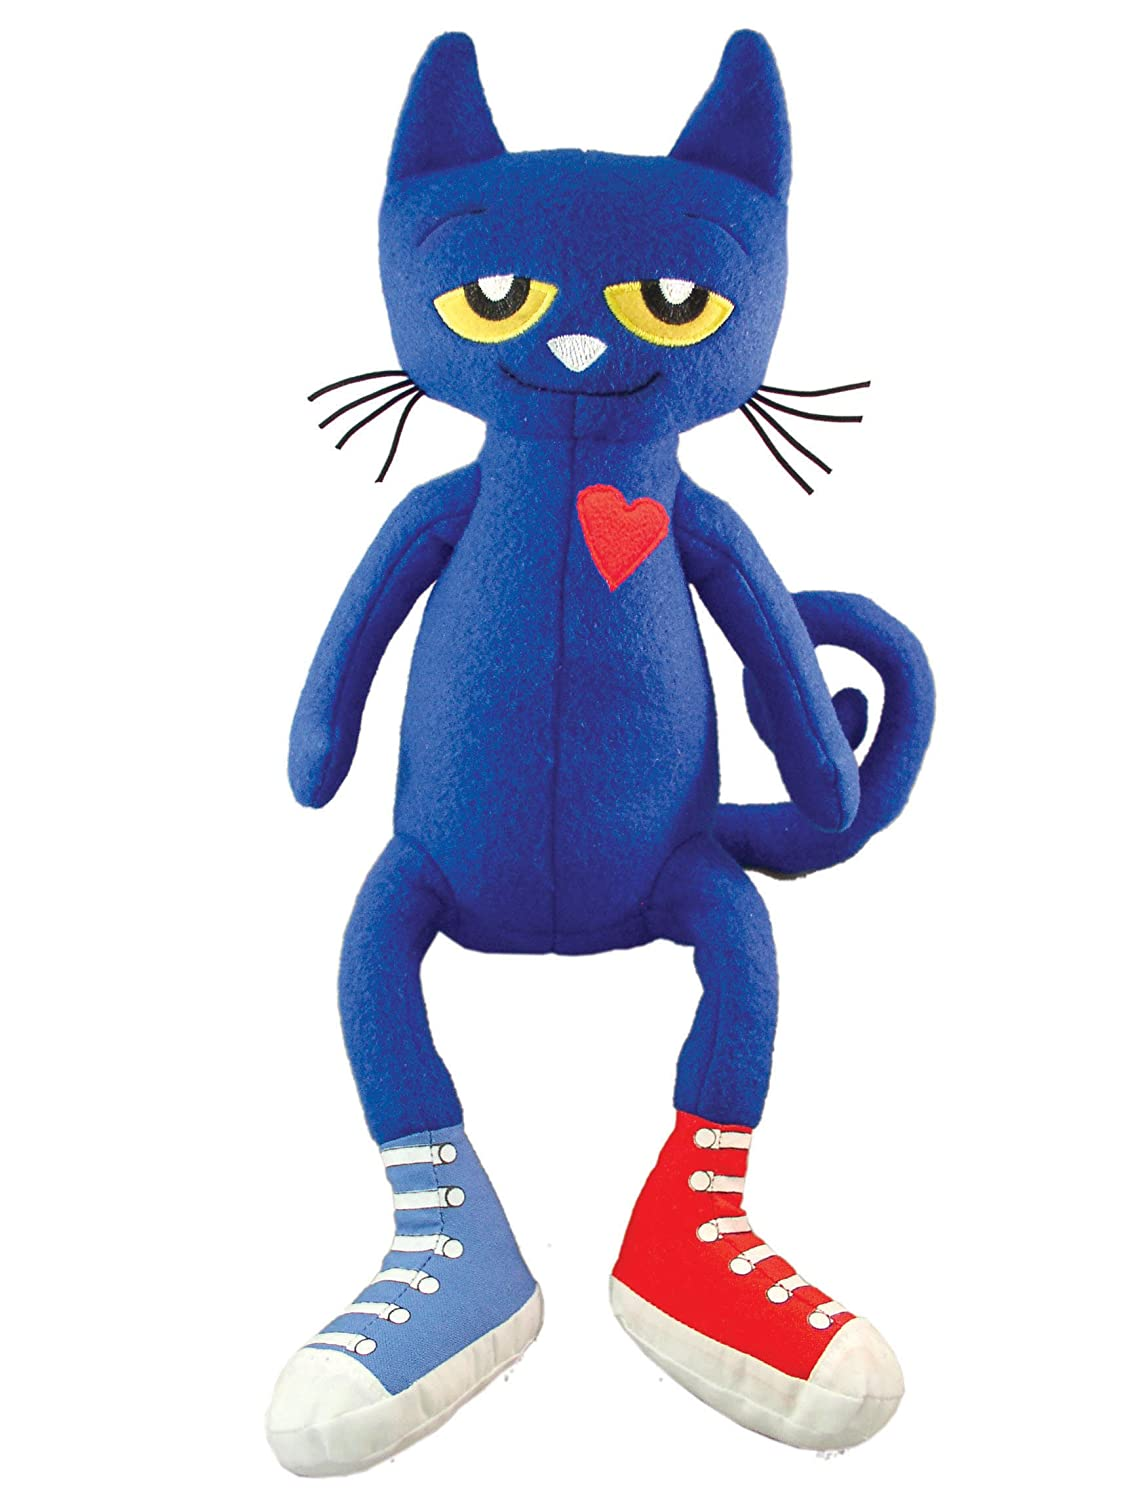 Pete the cat stuffed toy